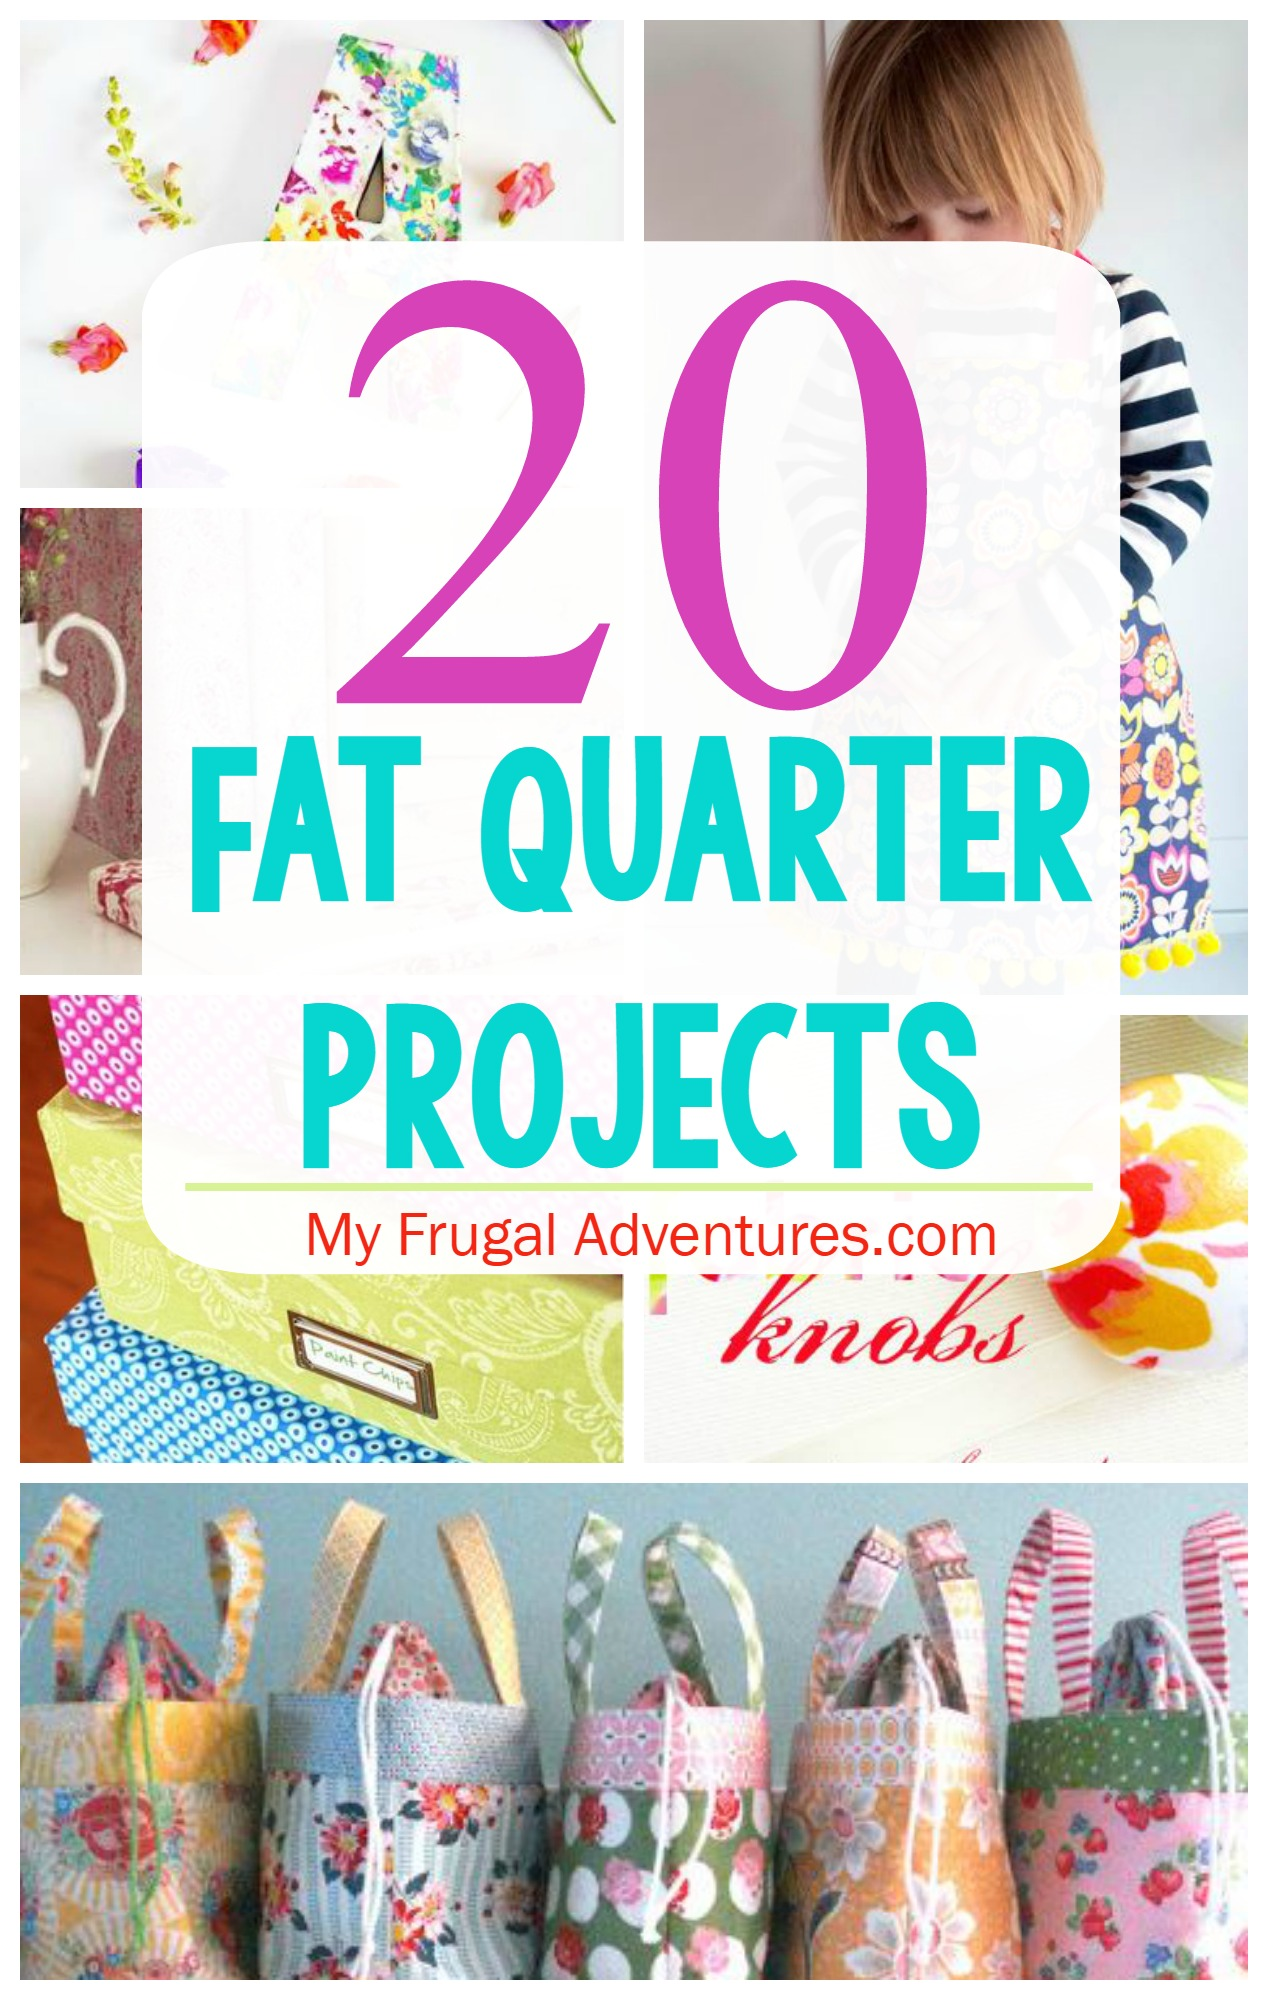 Diy Fat Quarter Projects 20 Projects To Use Fat Quarters My Frugal Adventures